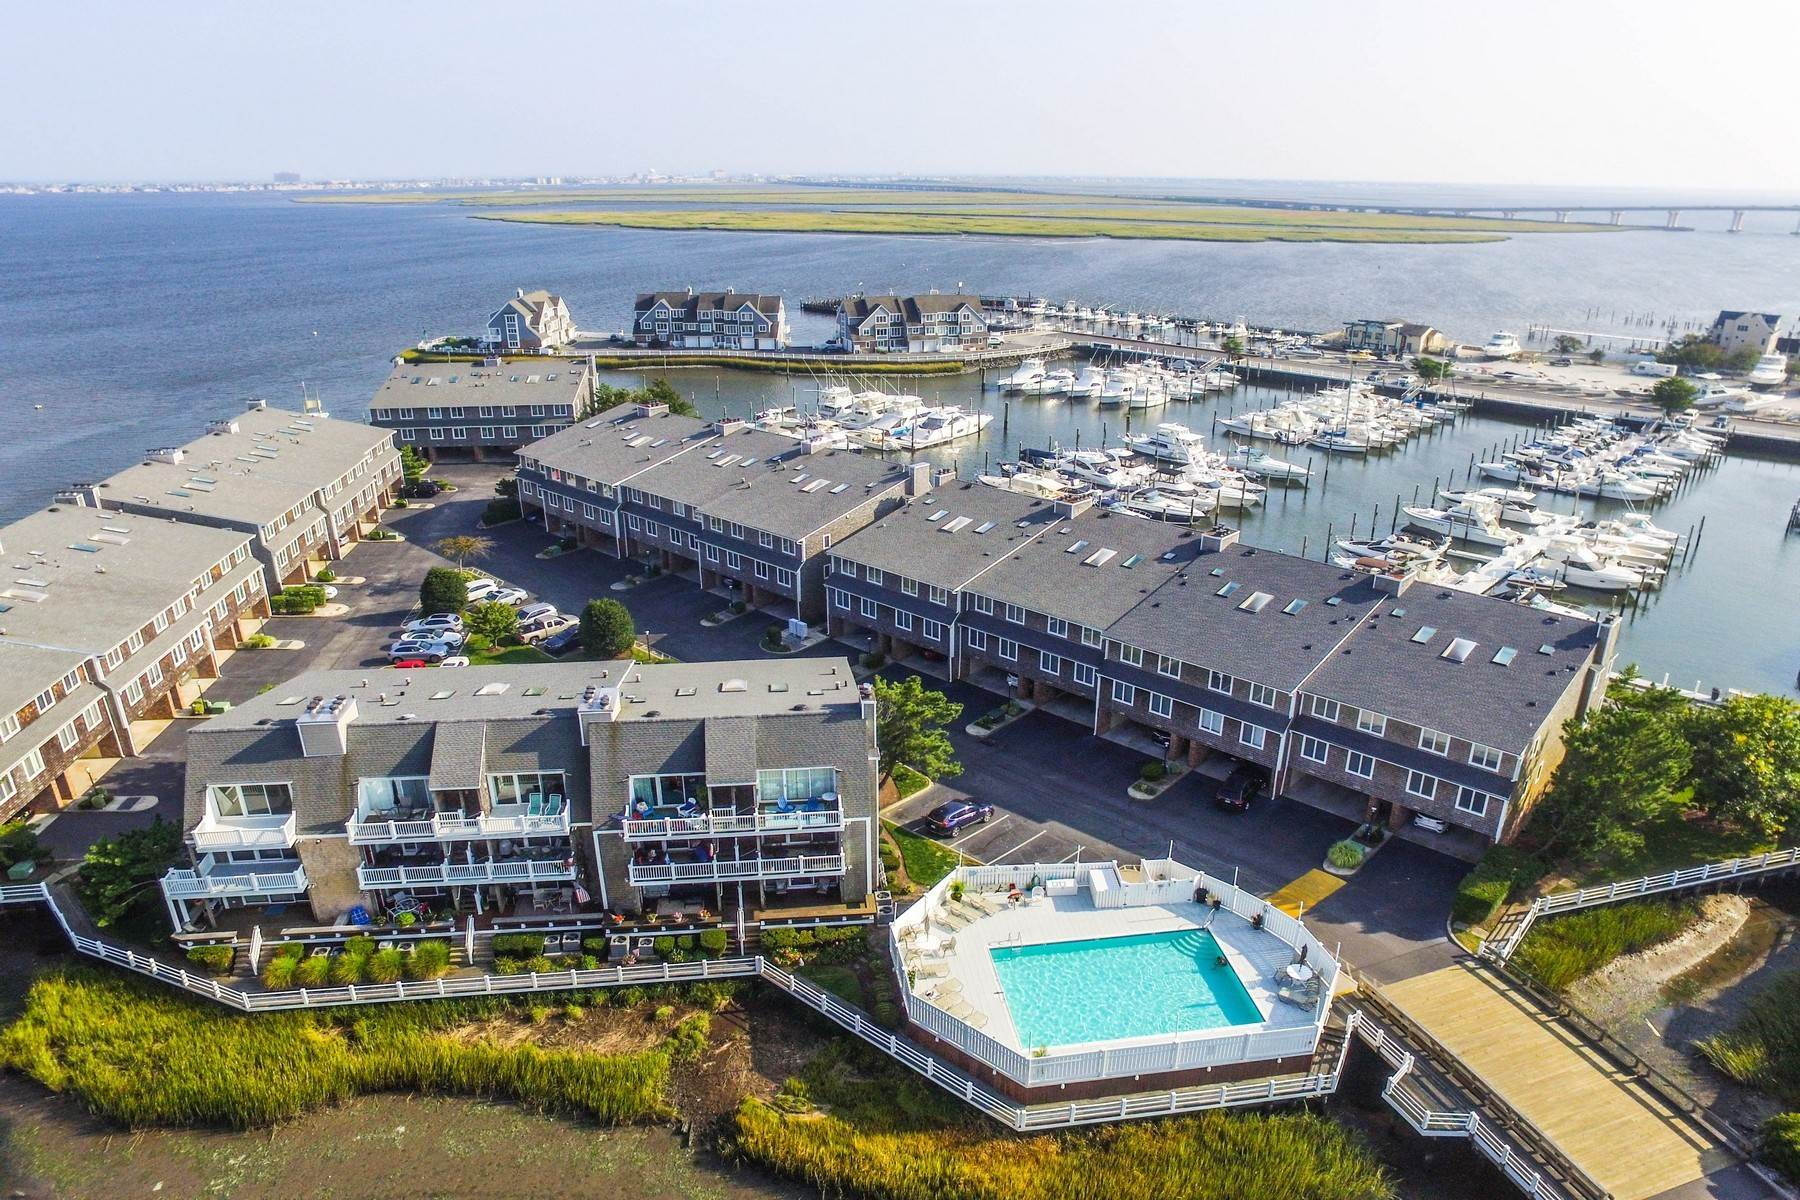 Property for Sale at 103 Harbour Cove, Unit 103 103 Harbour Cove Somers Point, New Jersey 08244 United States